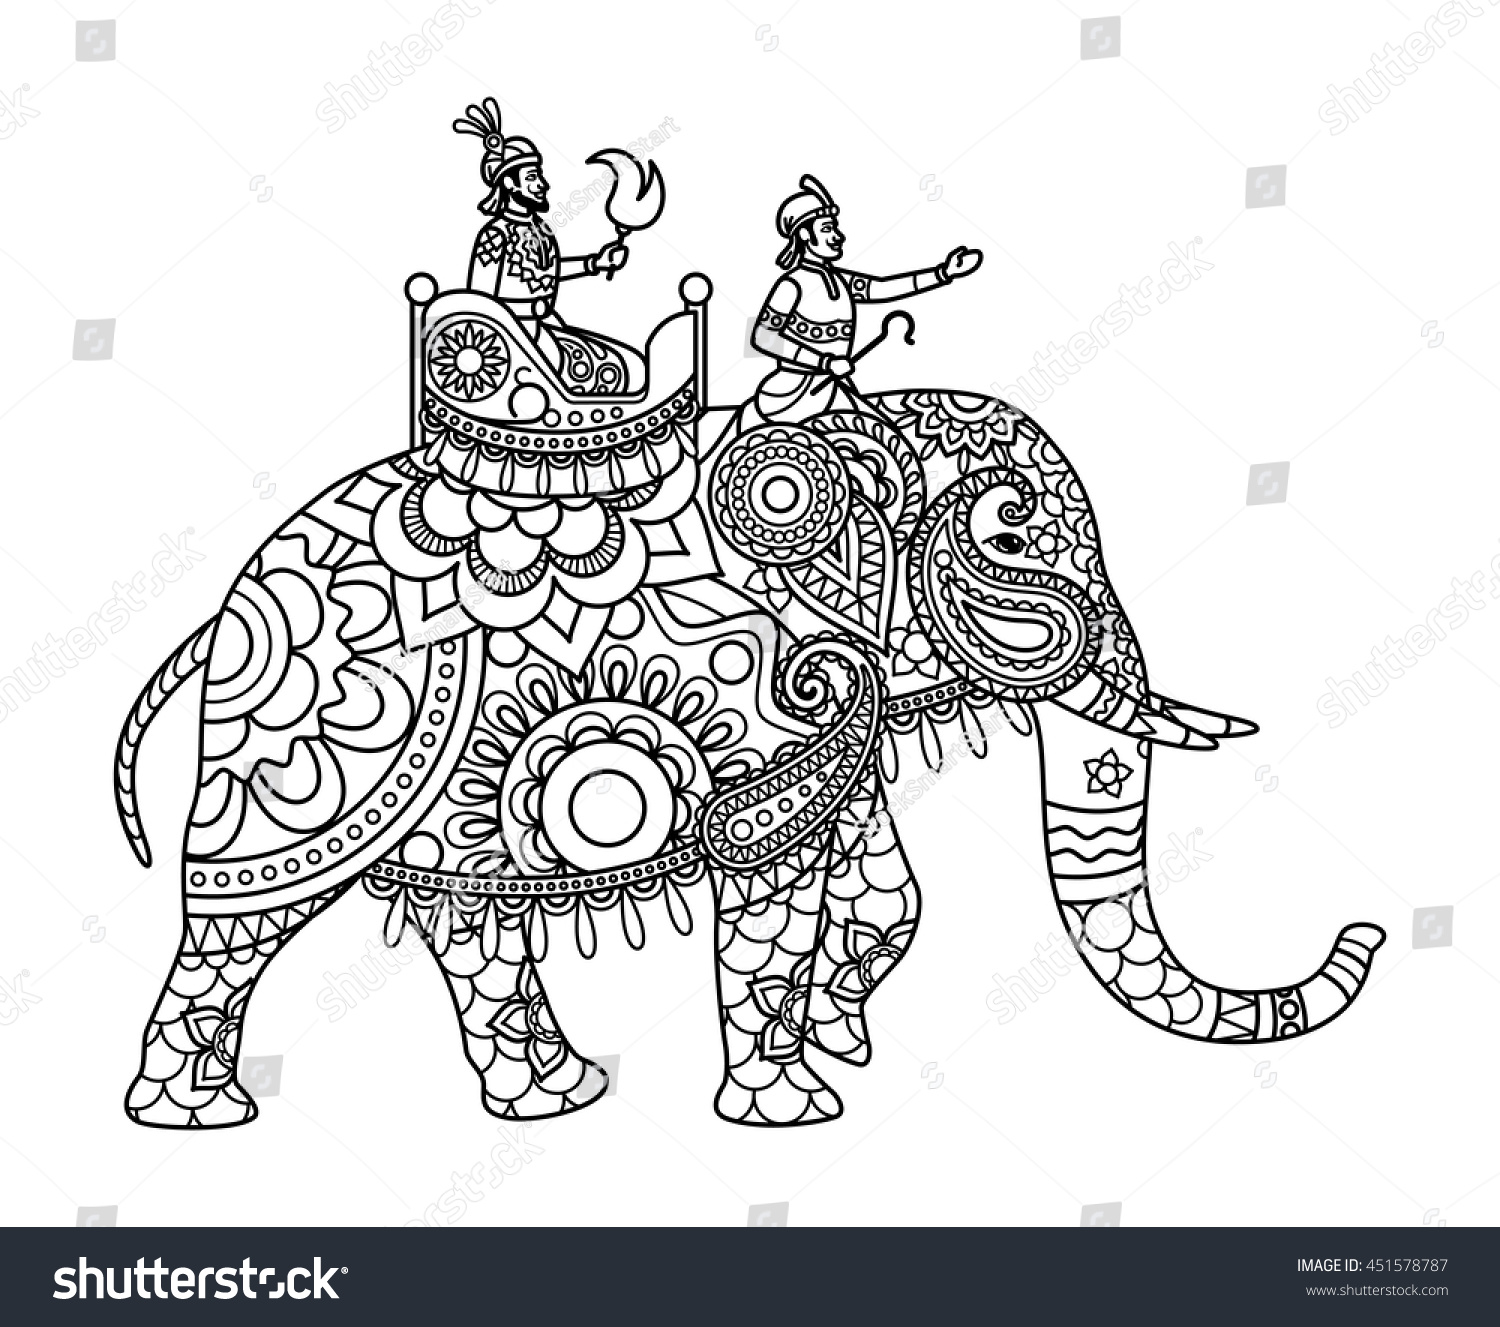 indian maharajah on the elephant coloring pages template vector illustration - Elephant Coloring